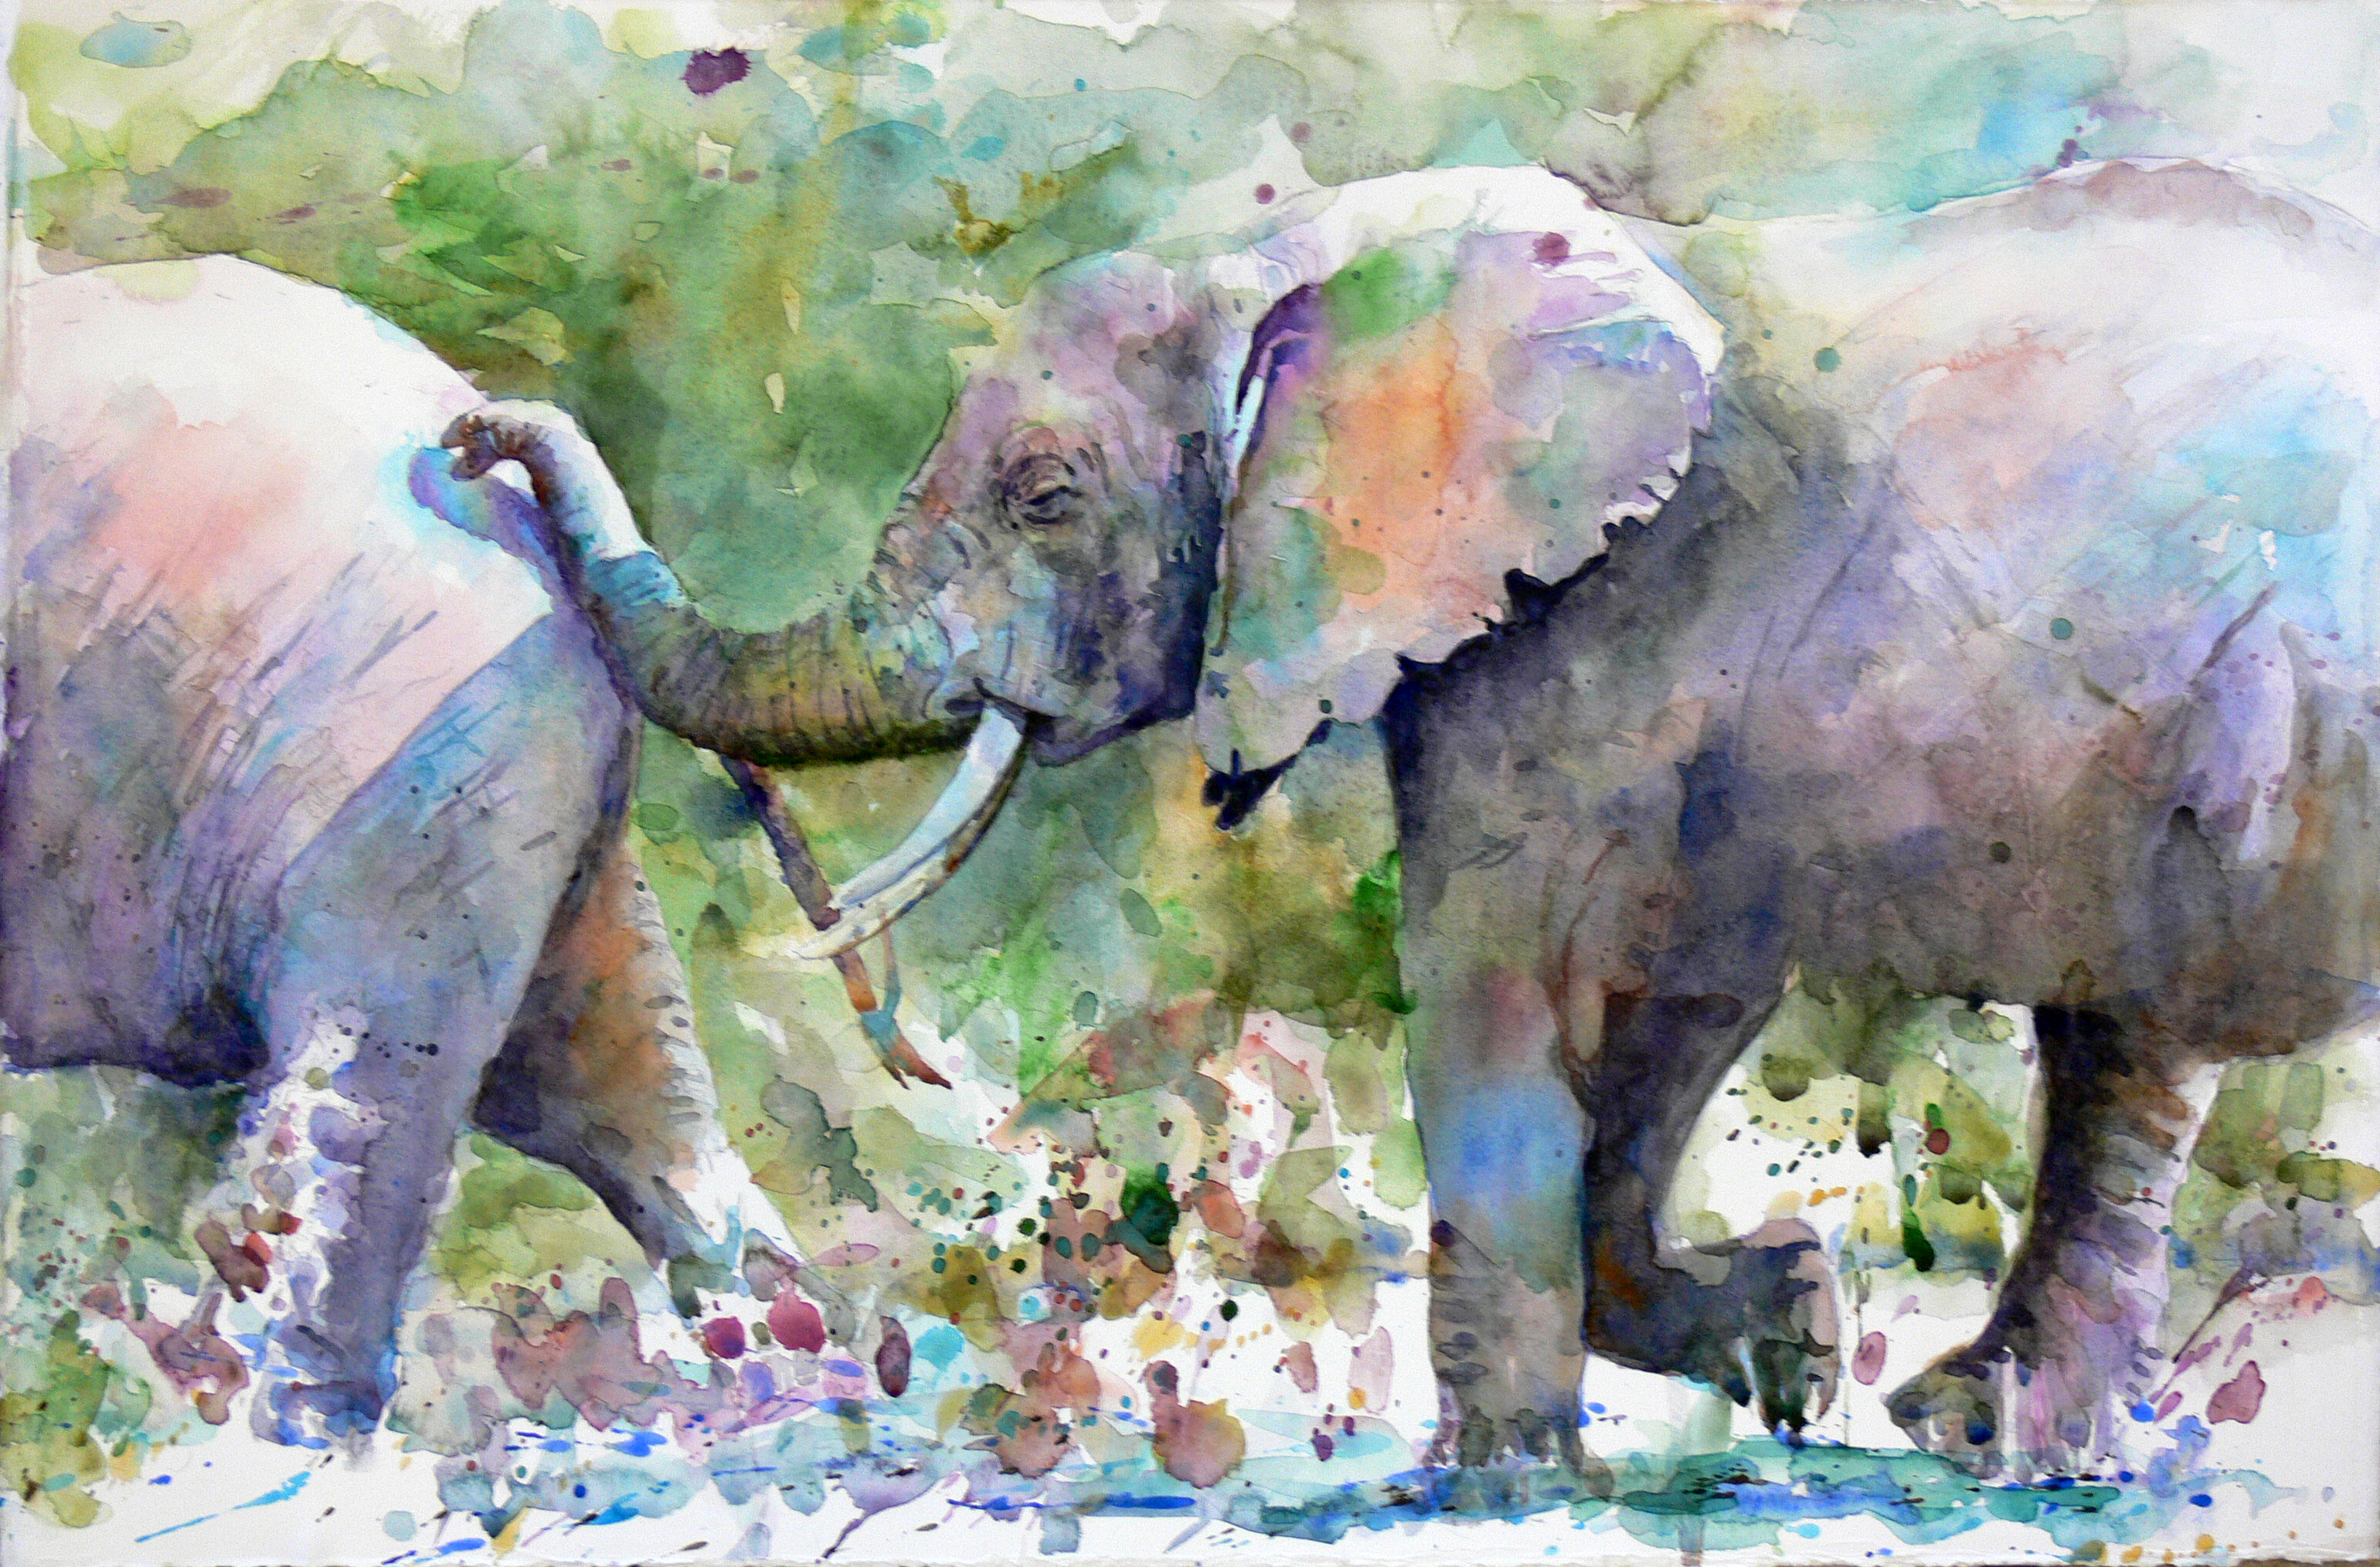 watercolor animal paintings animals expressive artist johnson watercolour artists painting catalog watercolors creating adult academy kim outreach programs workshop youth